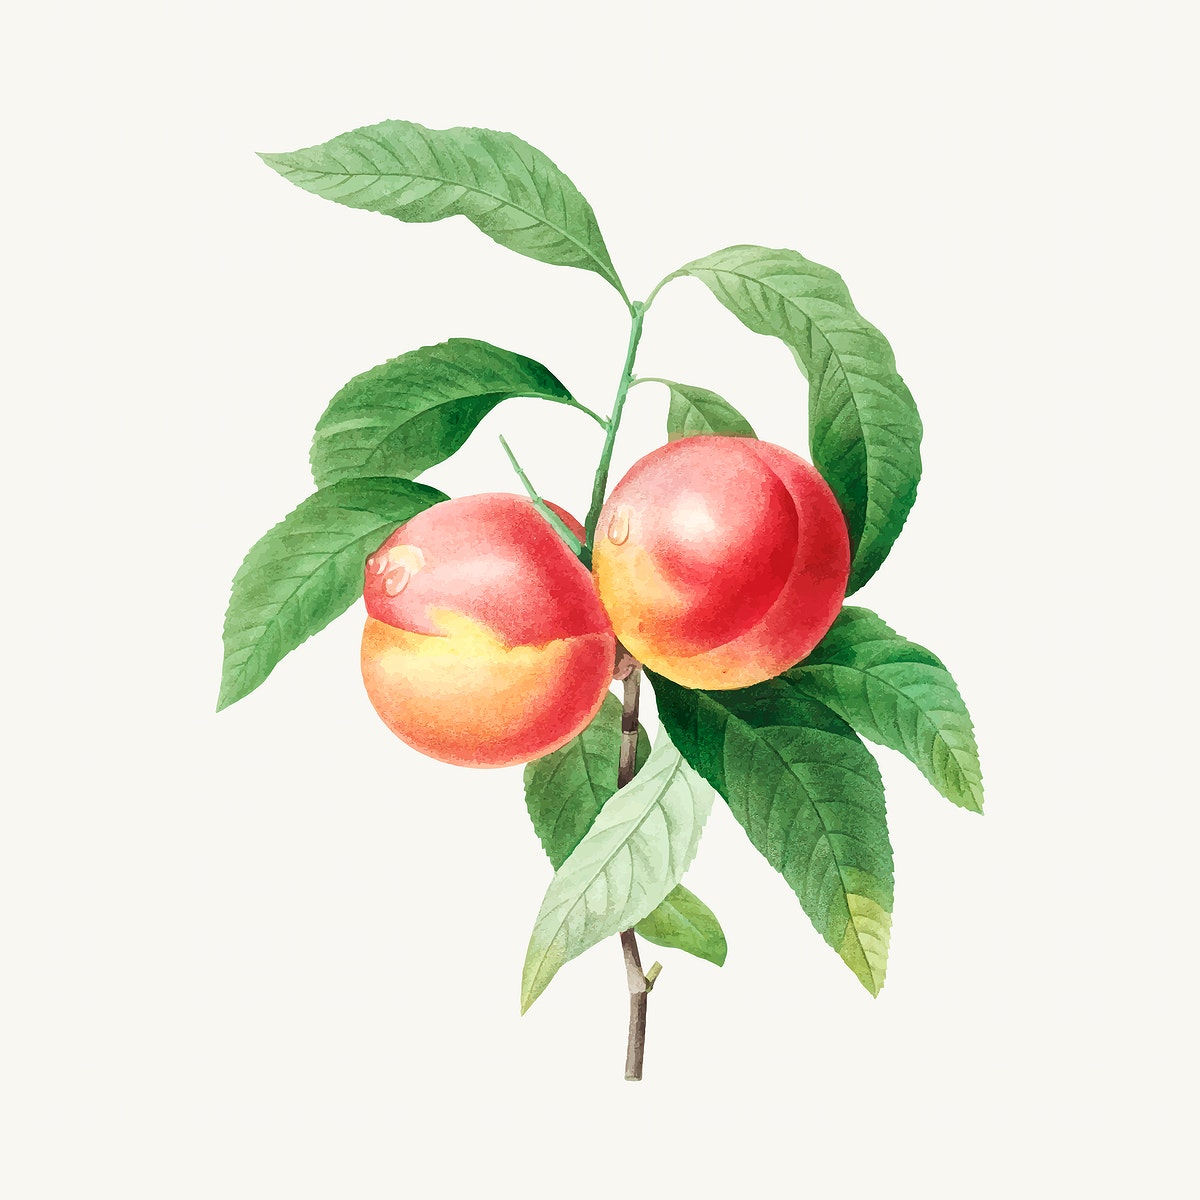 Peaches botanical illustration vector, remixed from artworks by Pierre-Joseph Redouté